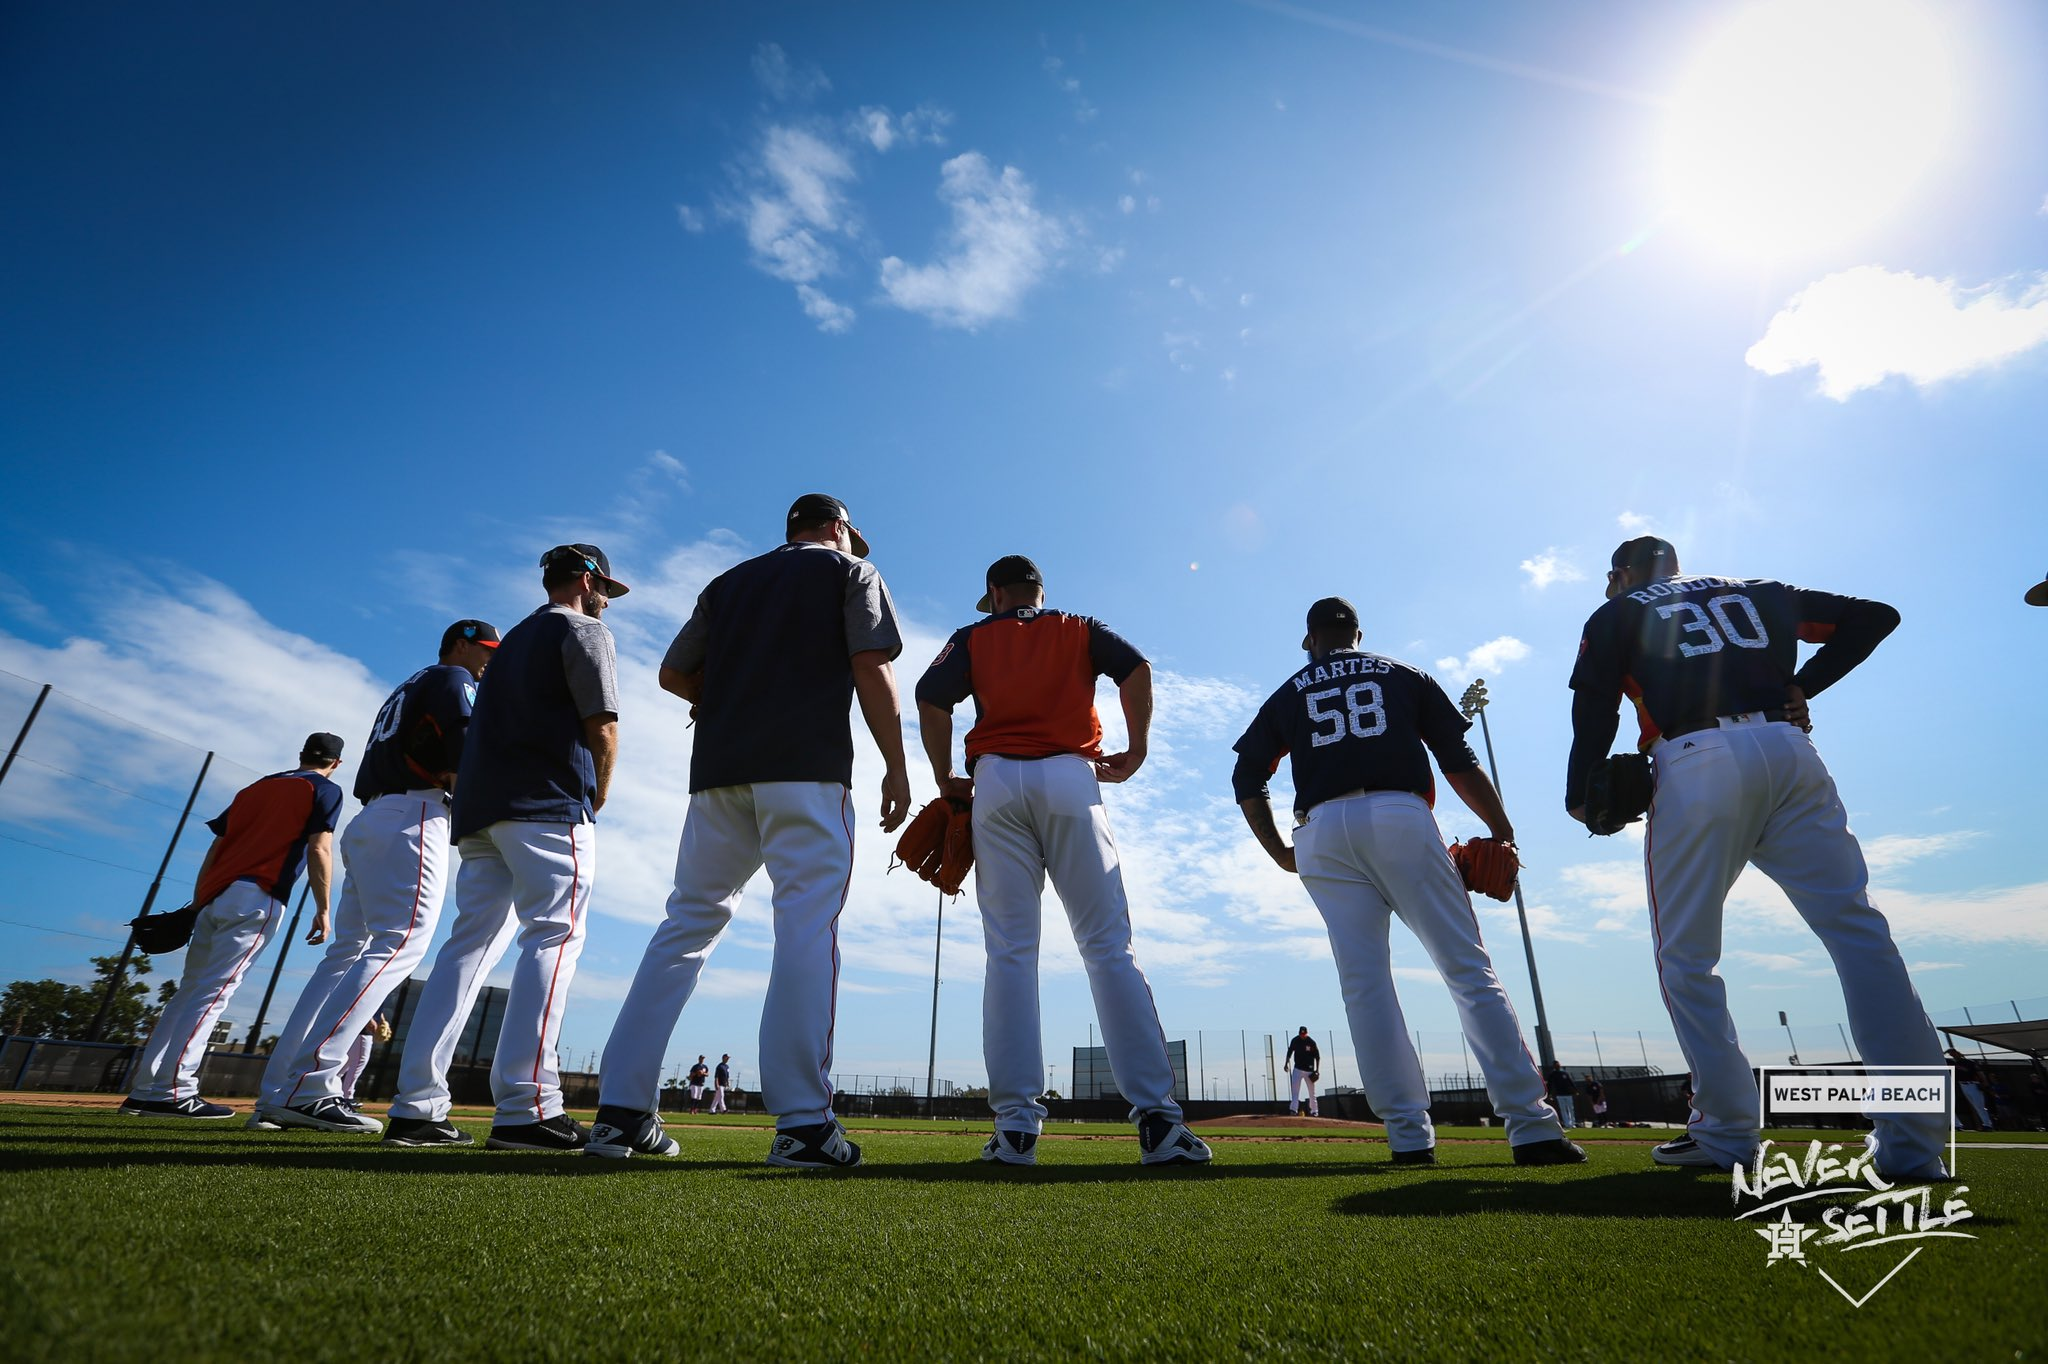 """We call this series """"capturing the backs of players while the sun beats down on us"""". https://t.co/WIY35KrMoC"""